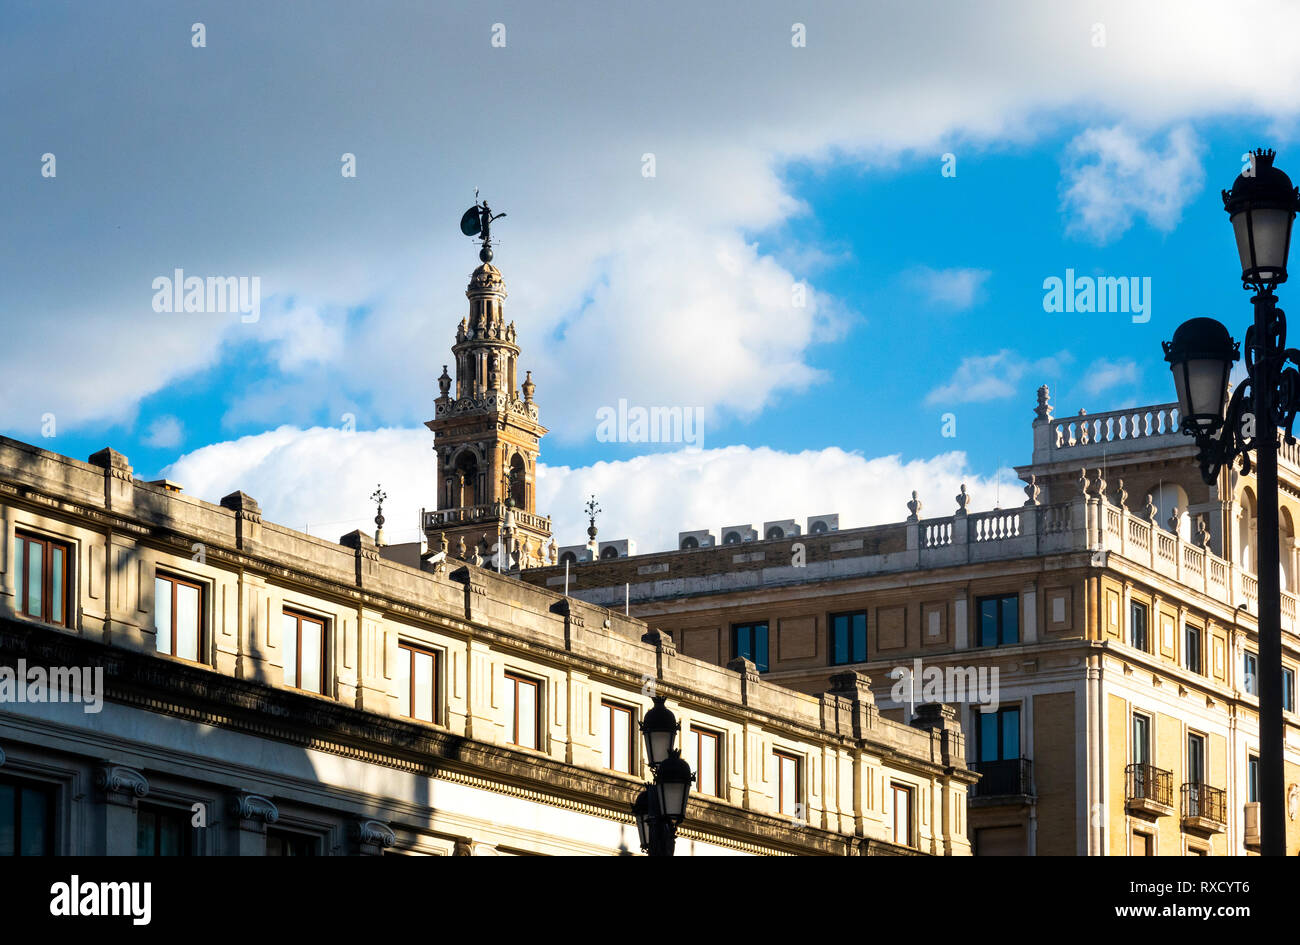 She who turns, the weather vane on top of La Giralda bell tower in Seville - Stock Image